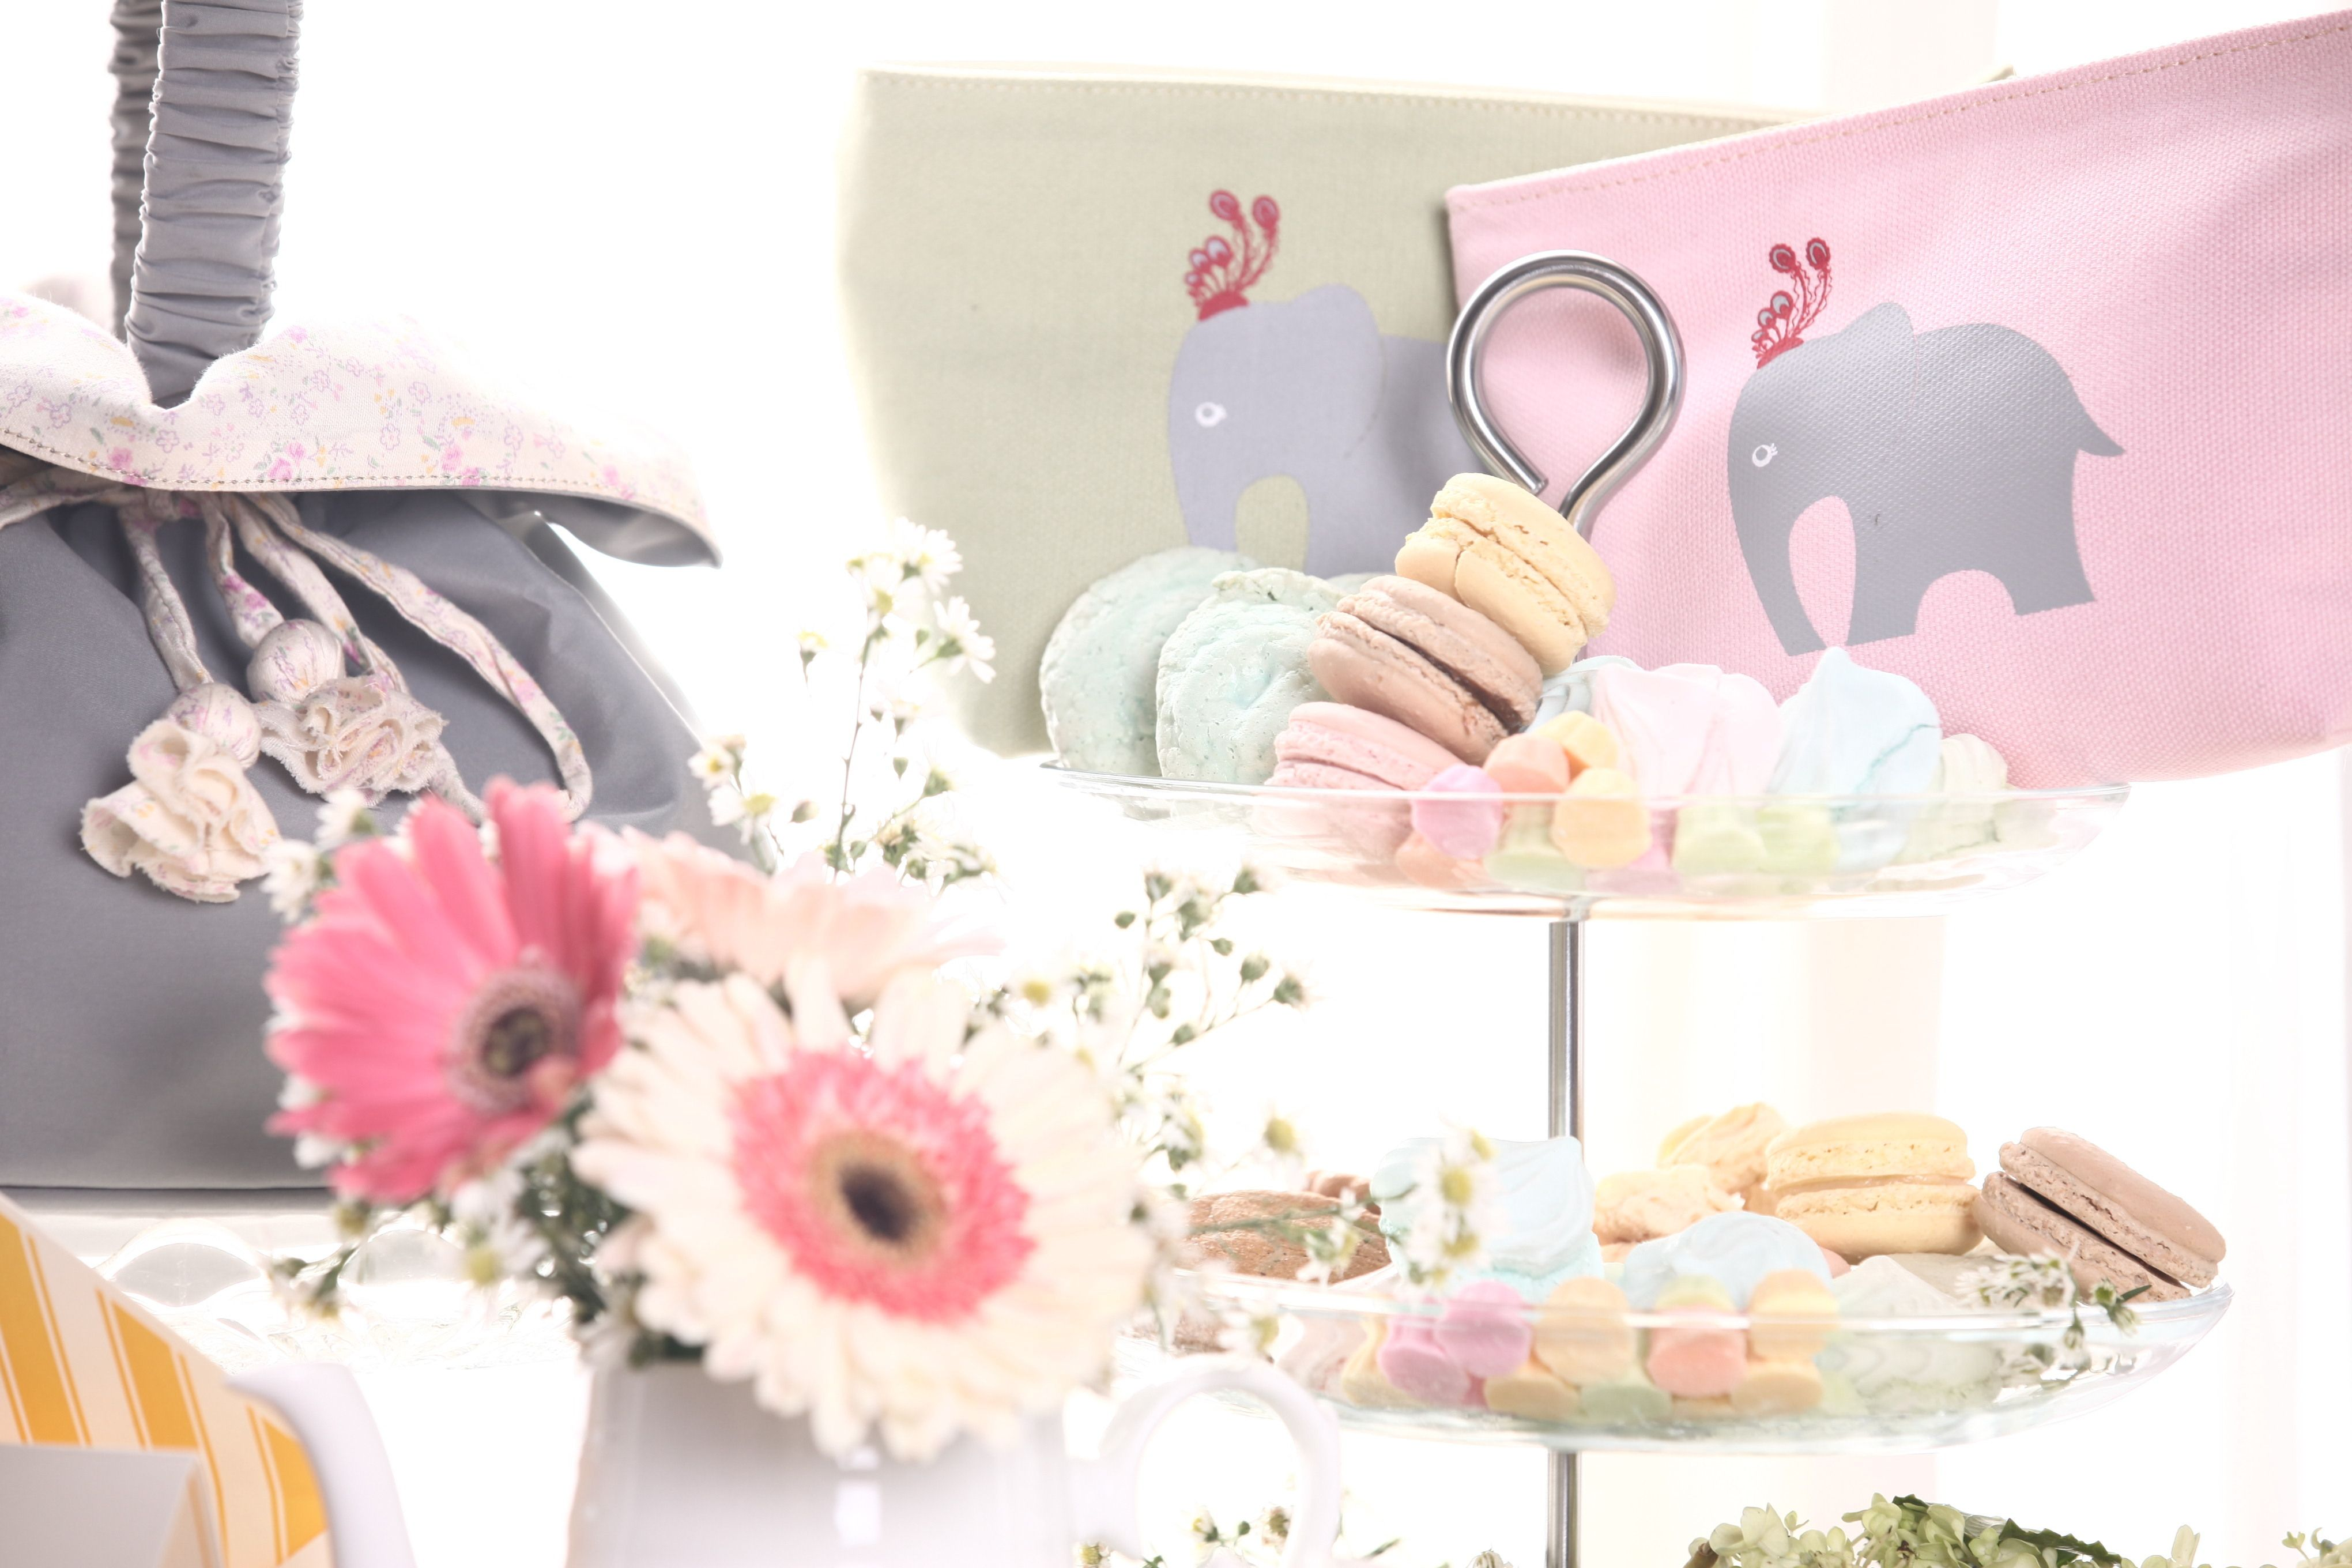 Name different kinds of wedding favors and gifts that could possibly ...